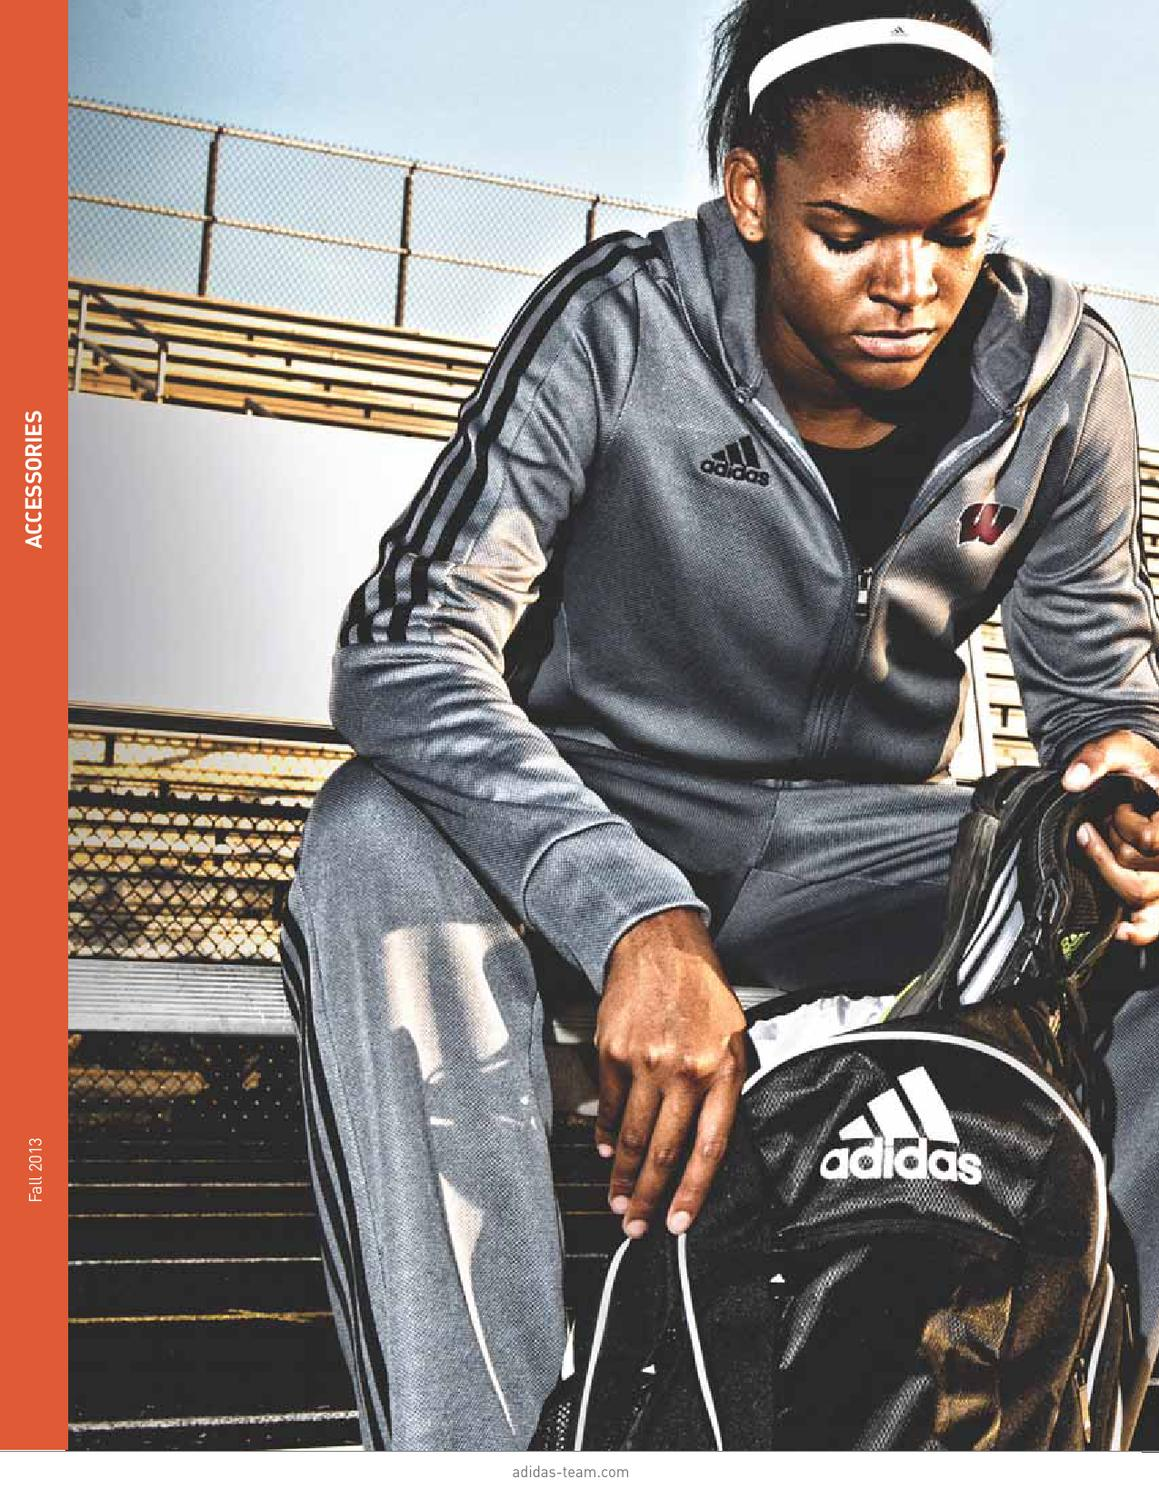 Adidas Fall Accessories 2013 by SquadLocker - issuu 12a6eca782b49